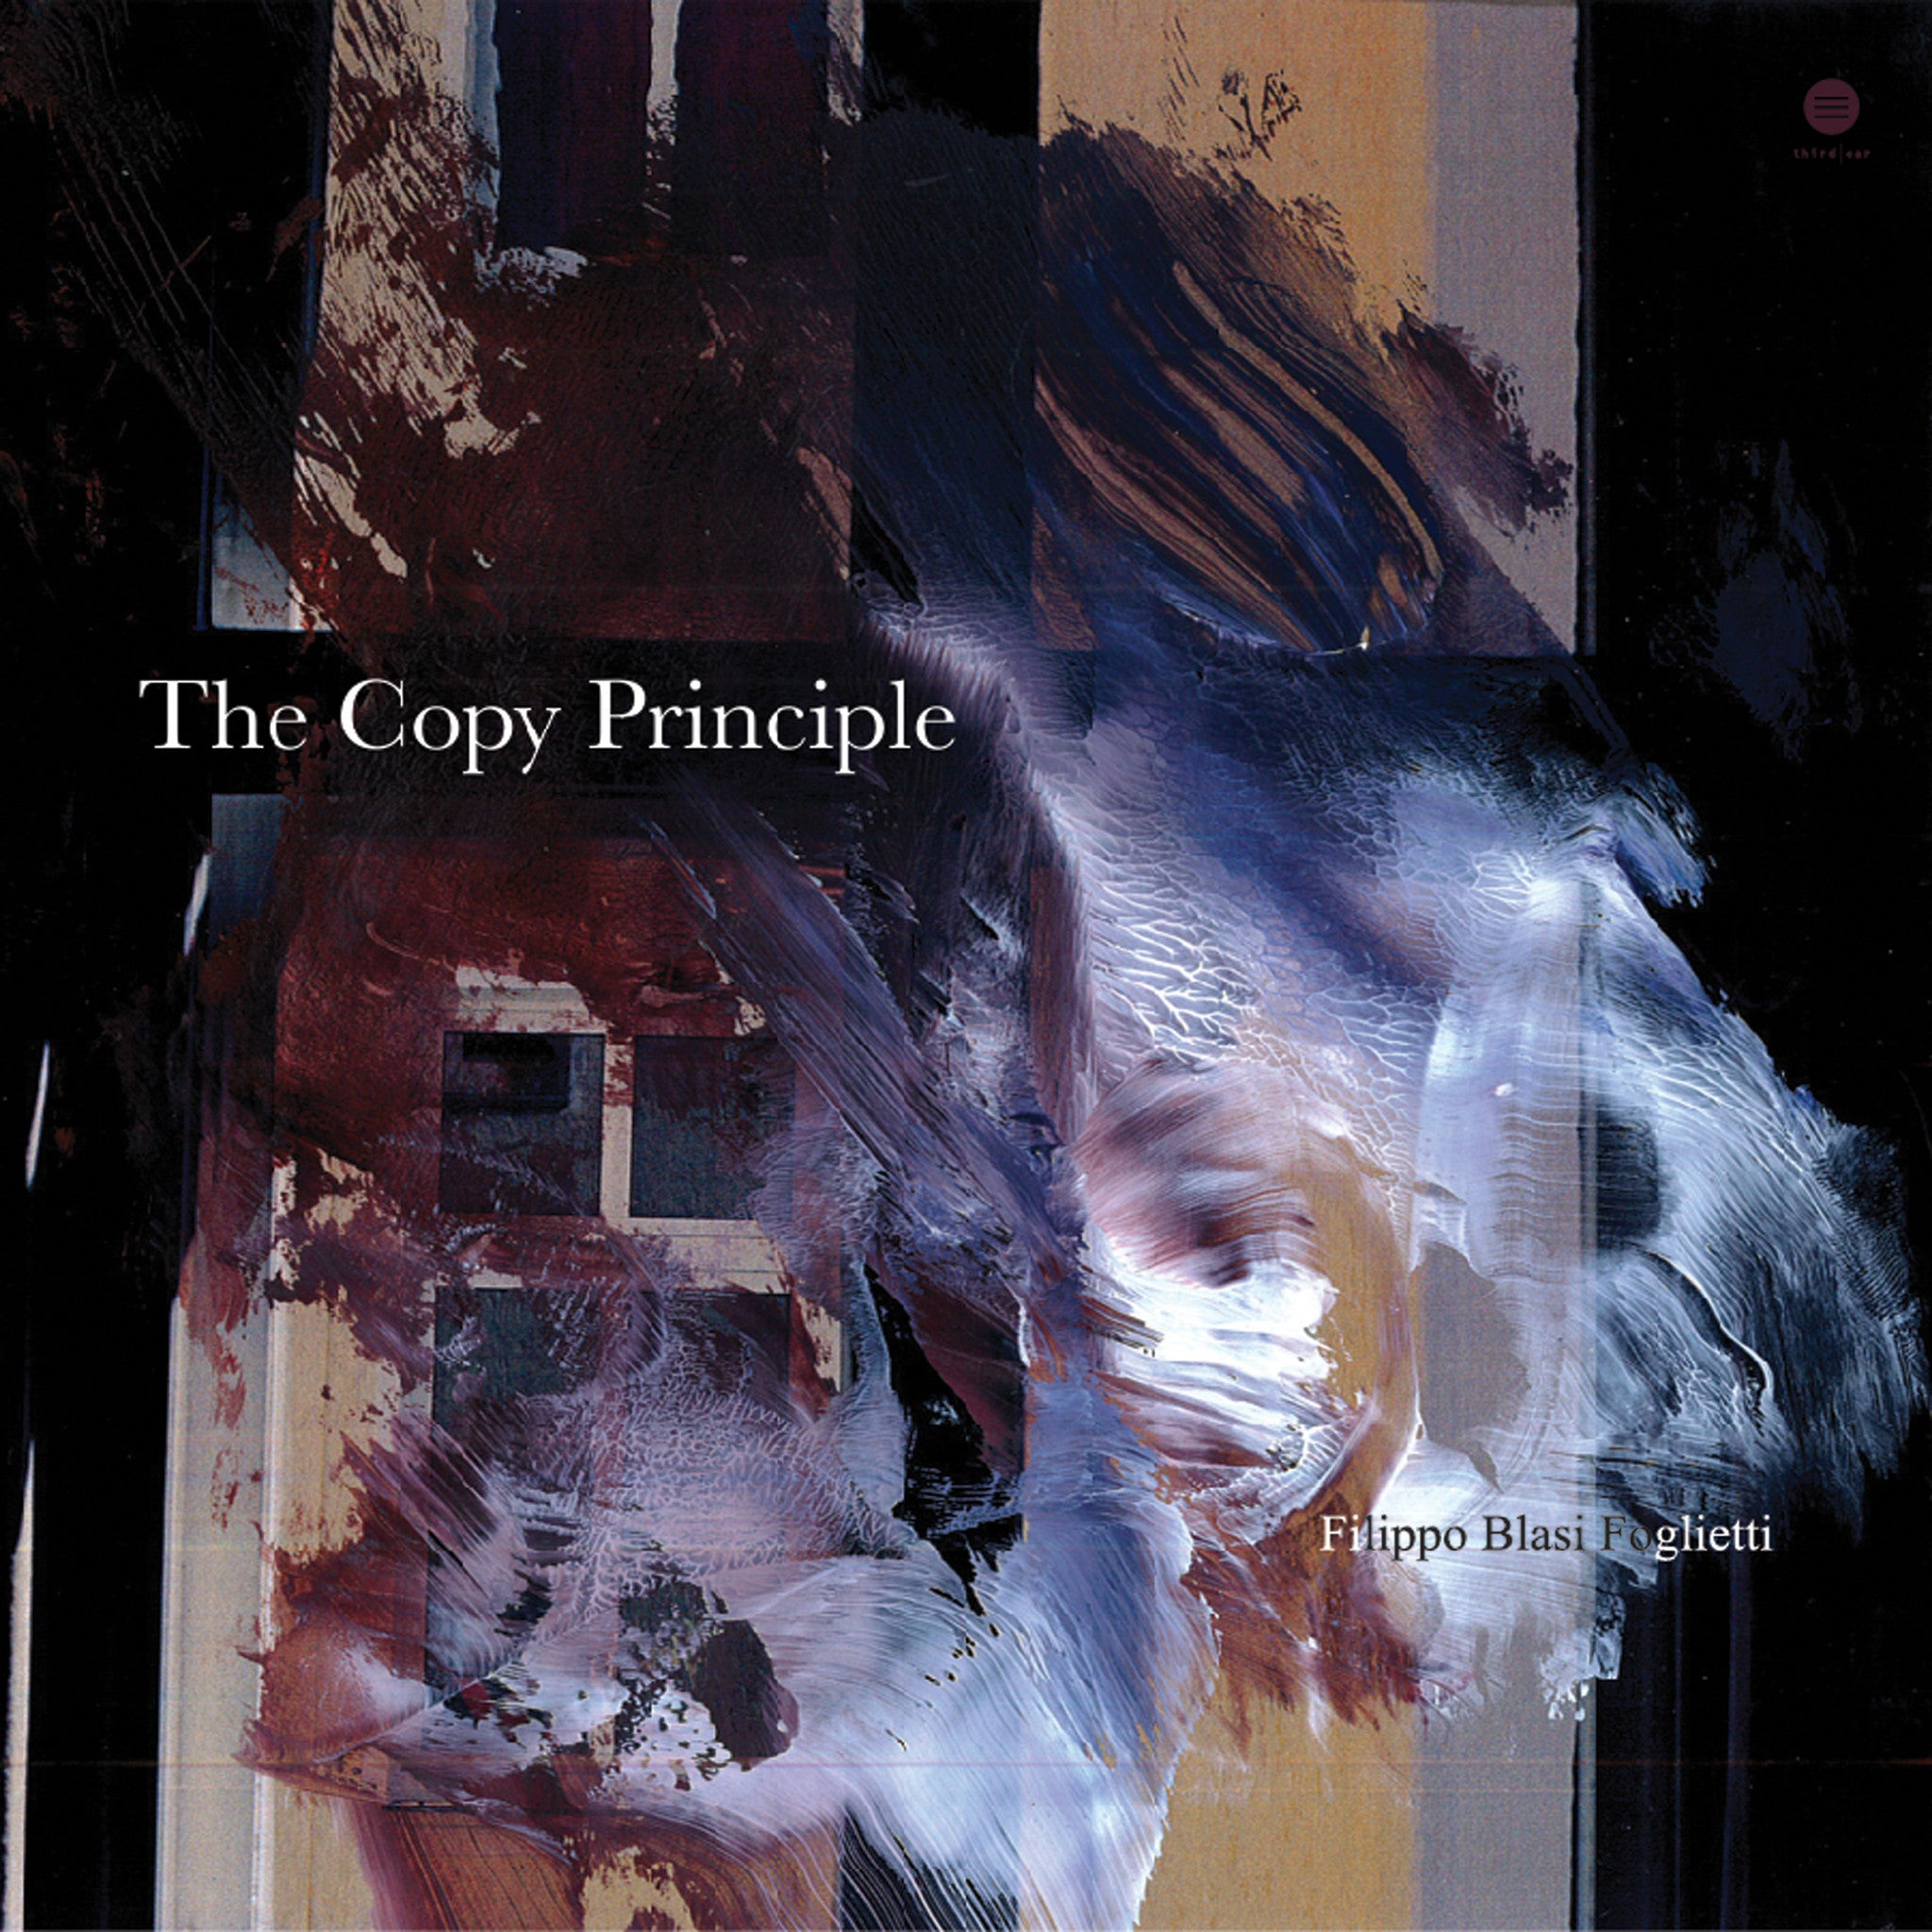 Filippo Blasi Foglietti - The Copy Principle EP - Unearthed Sounds